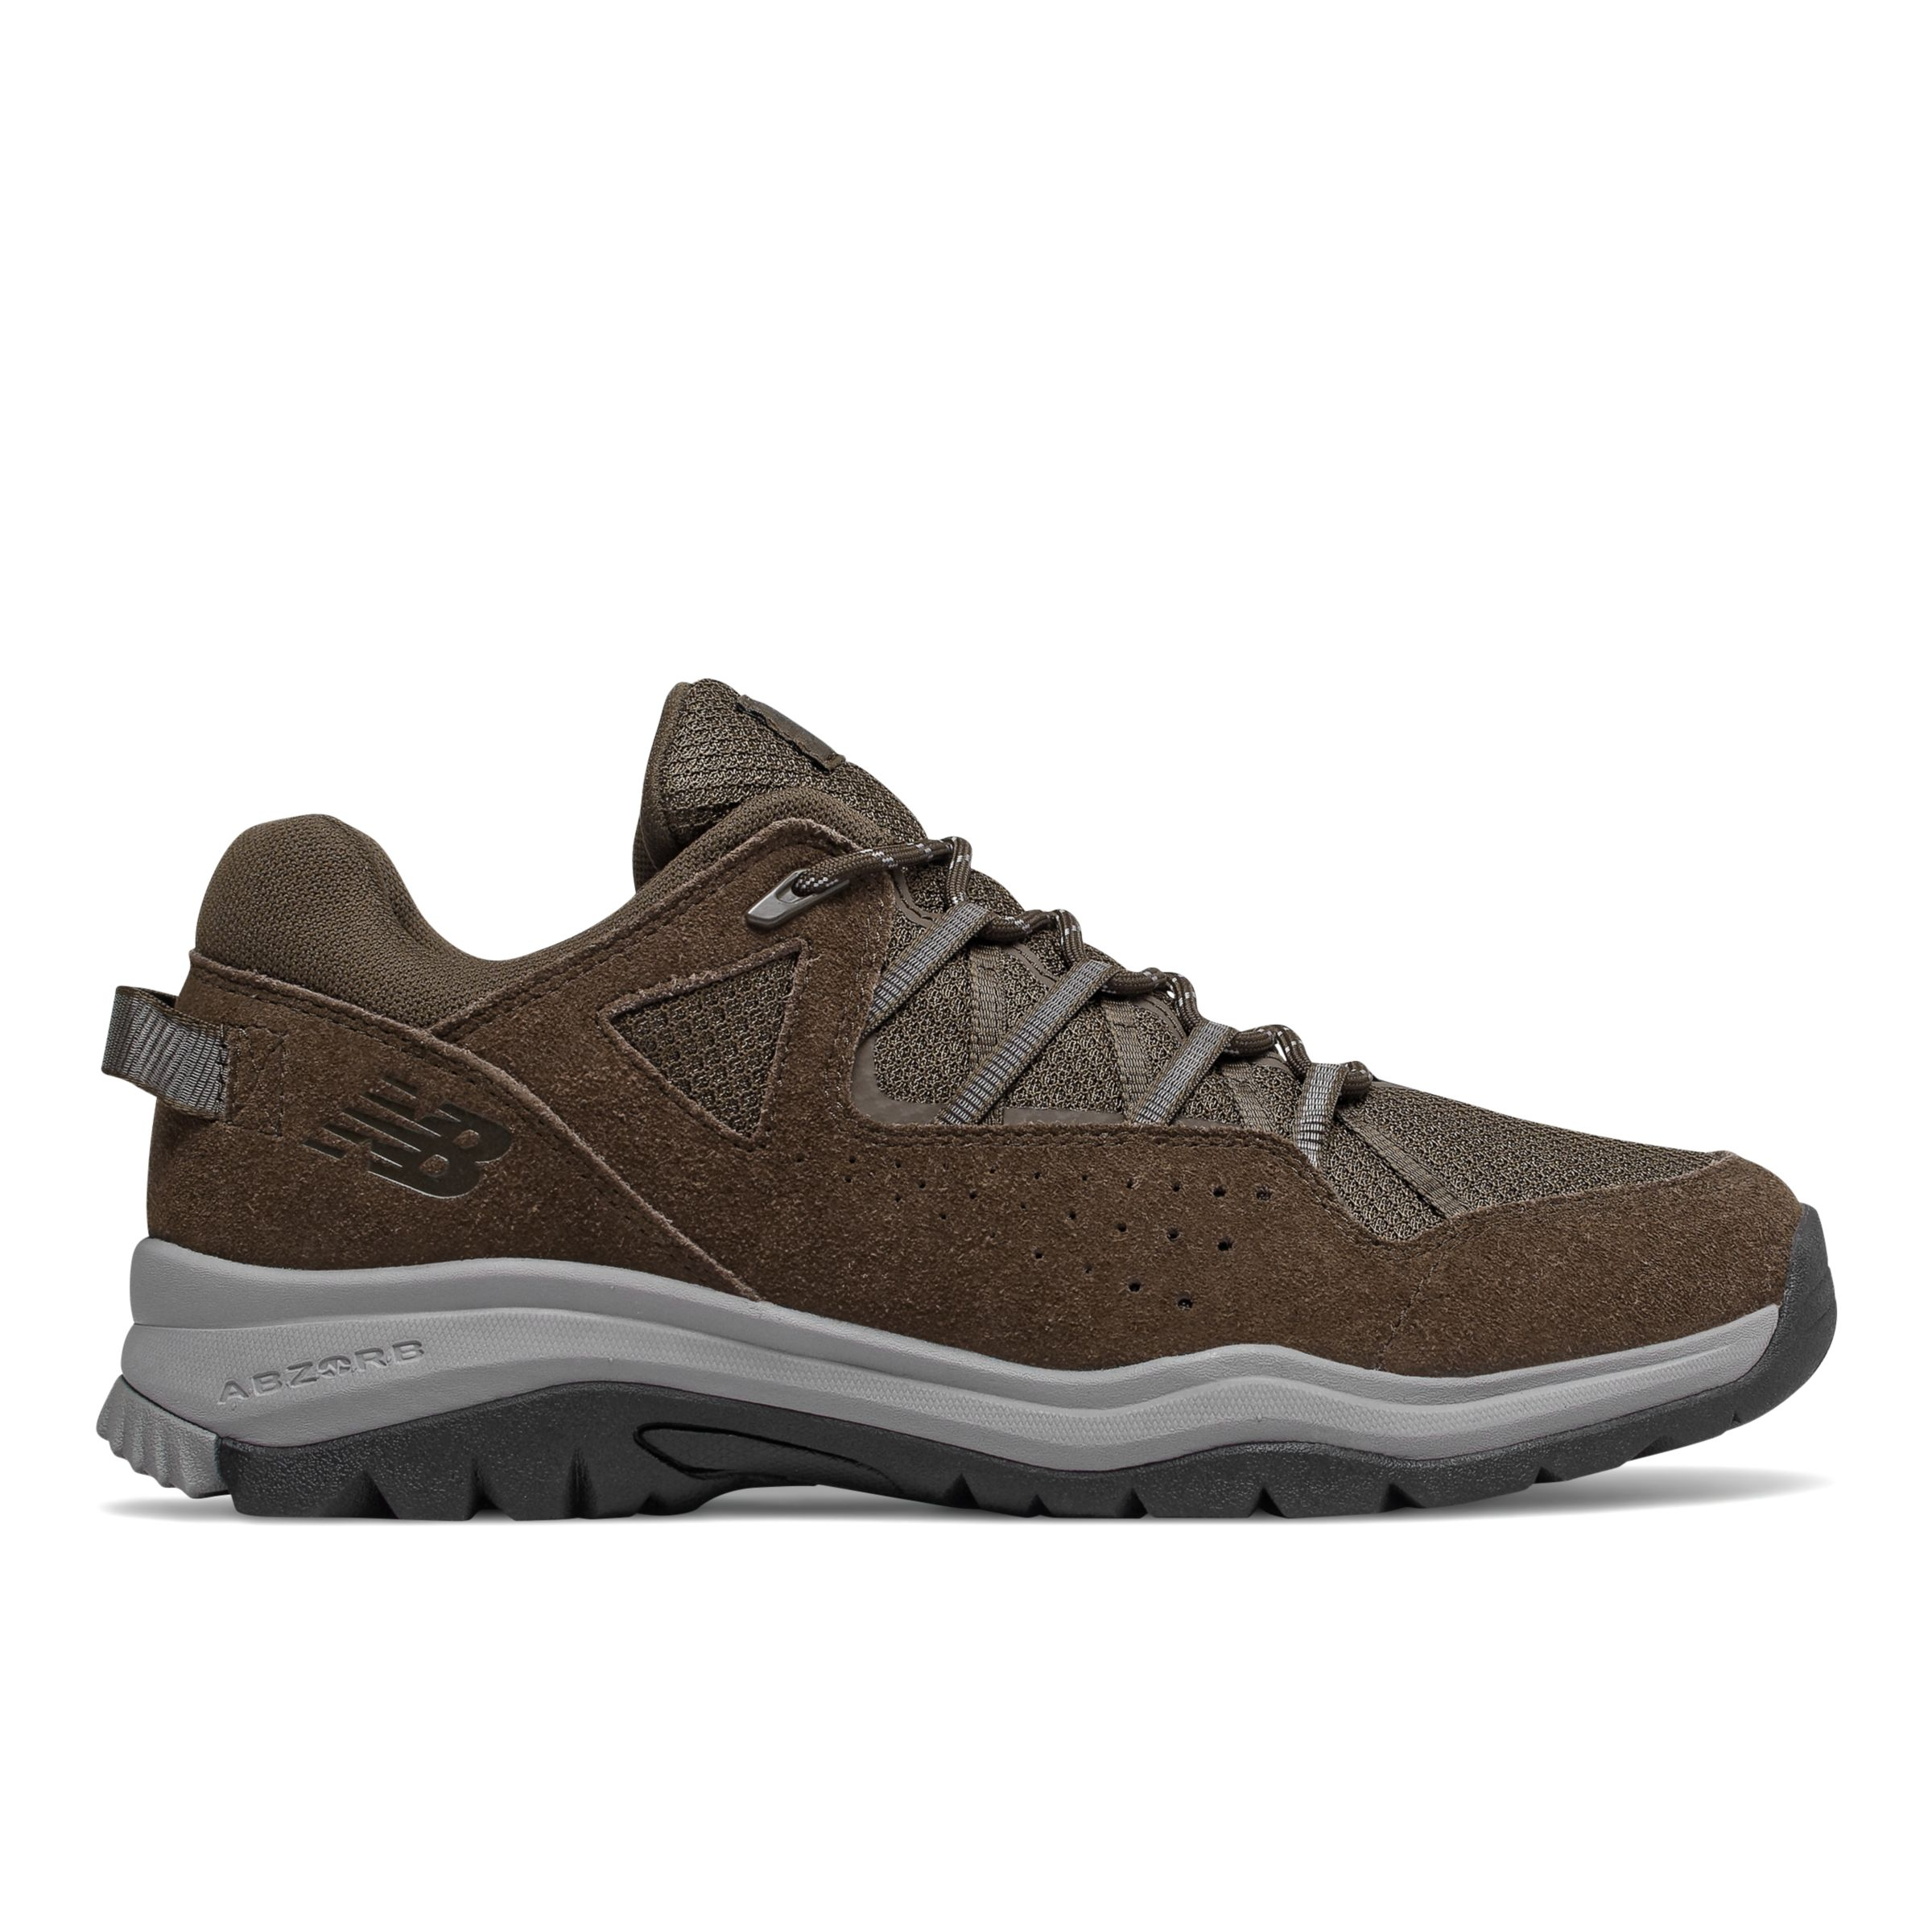 best shoes for hiking guys